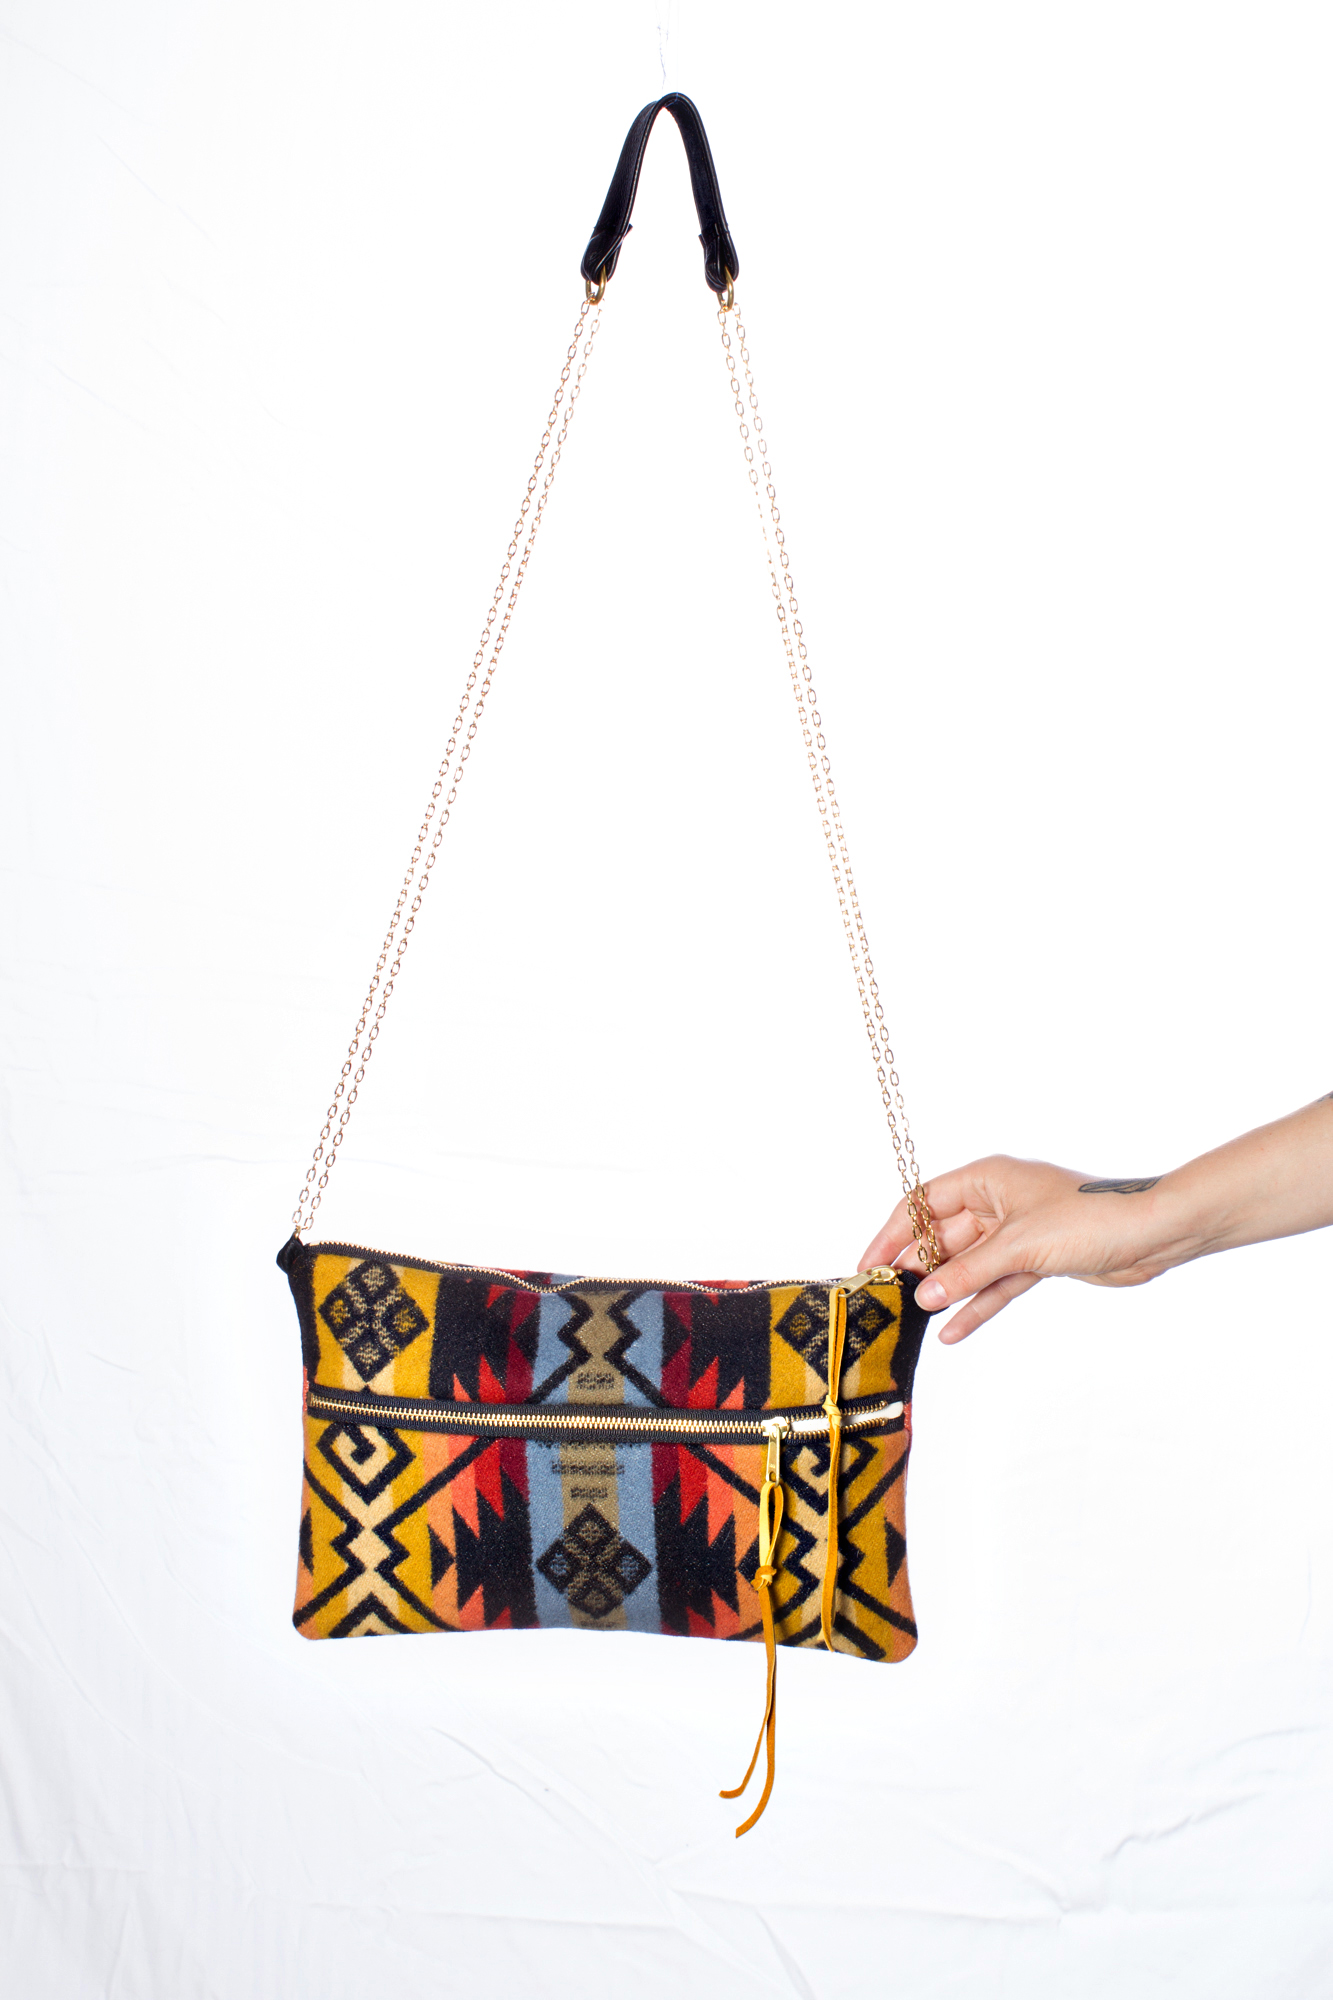 the new double chain shoulder bag in hendrix, coming soon!